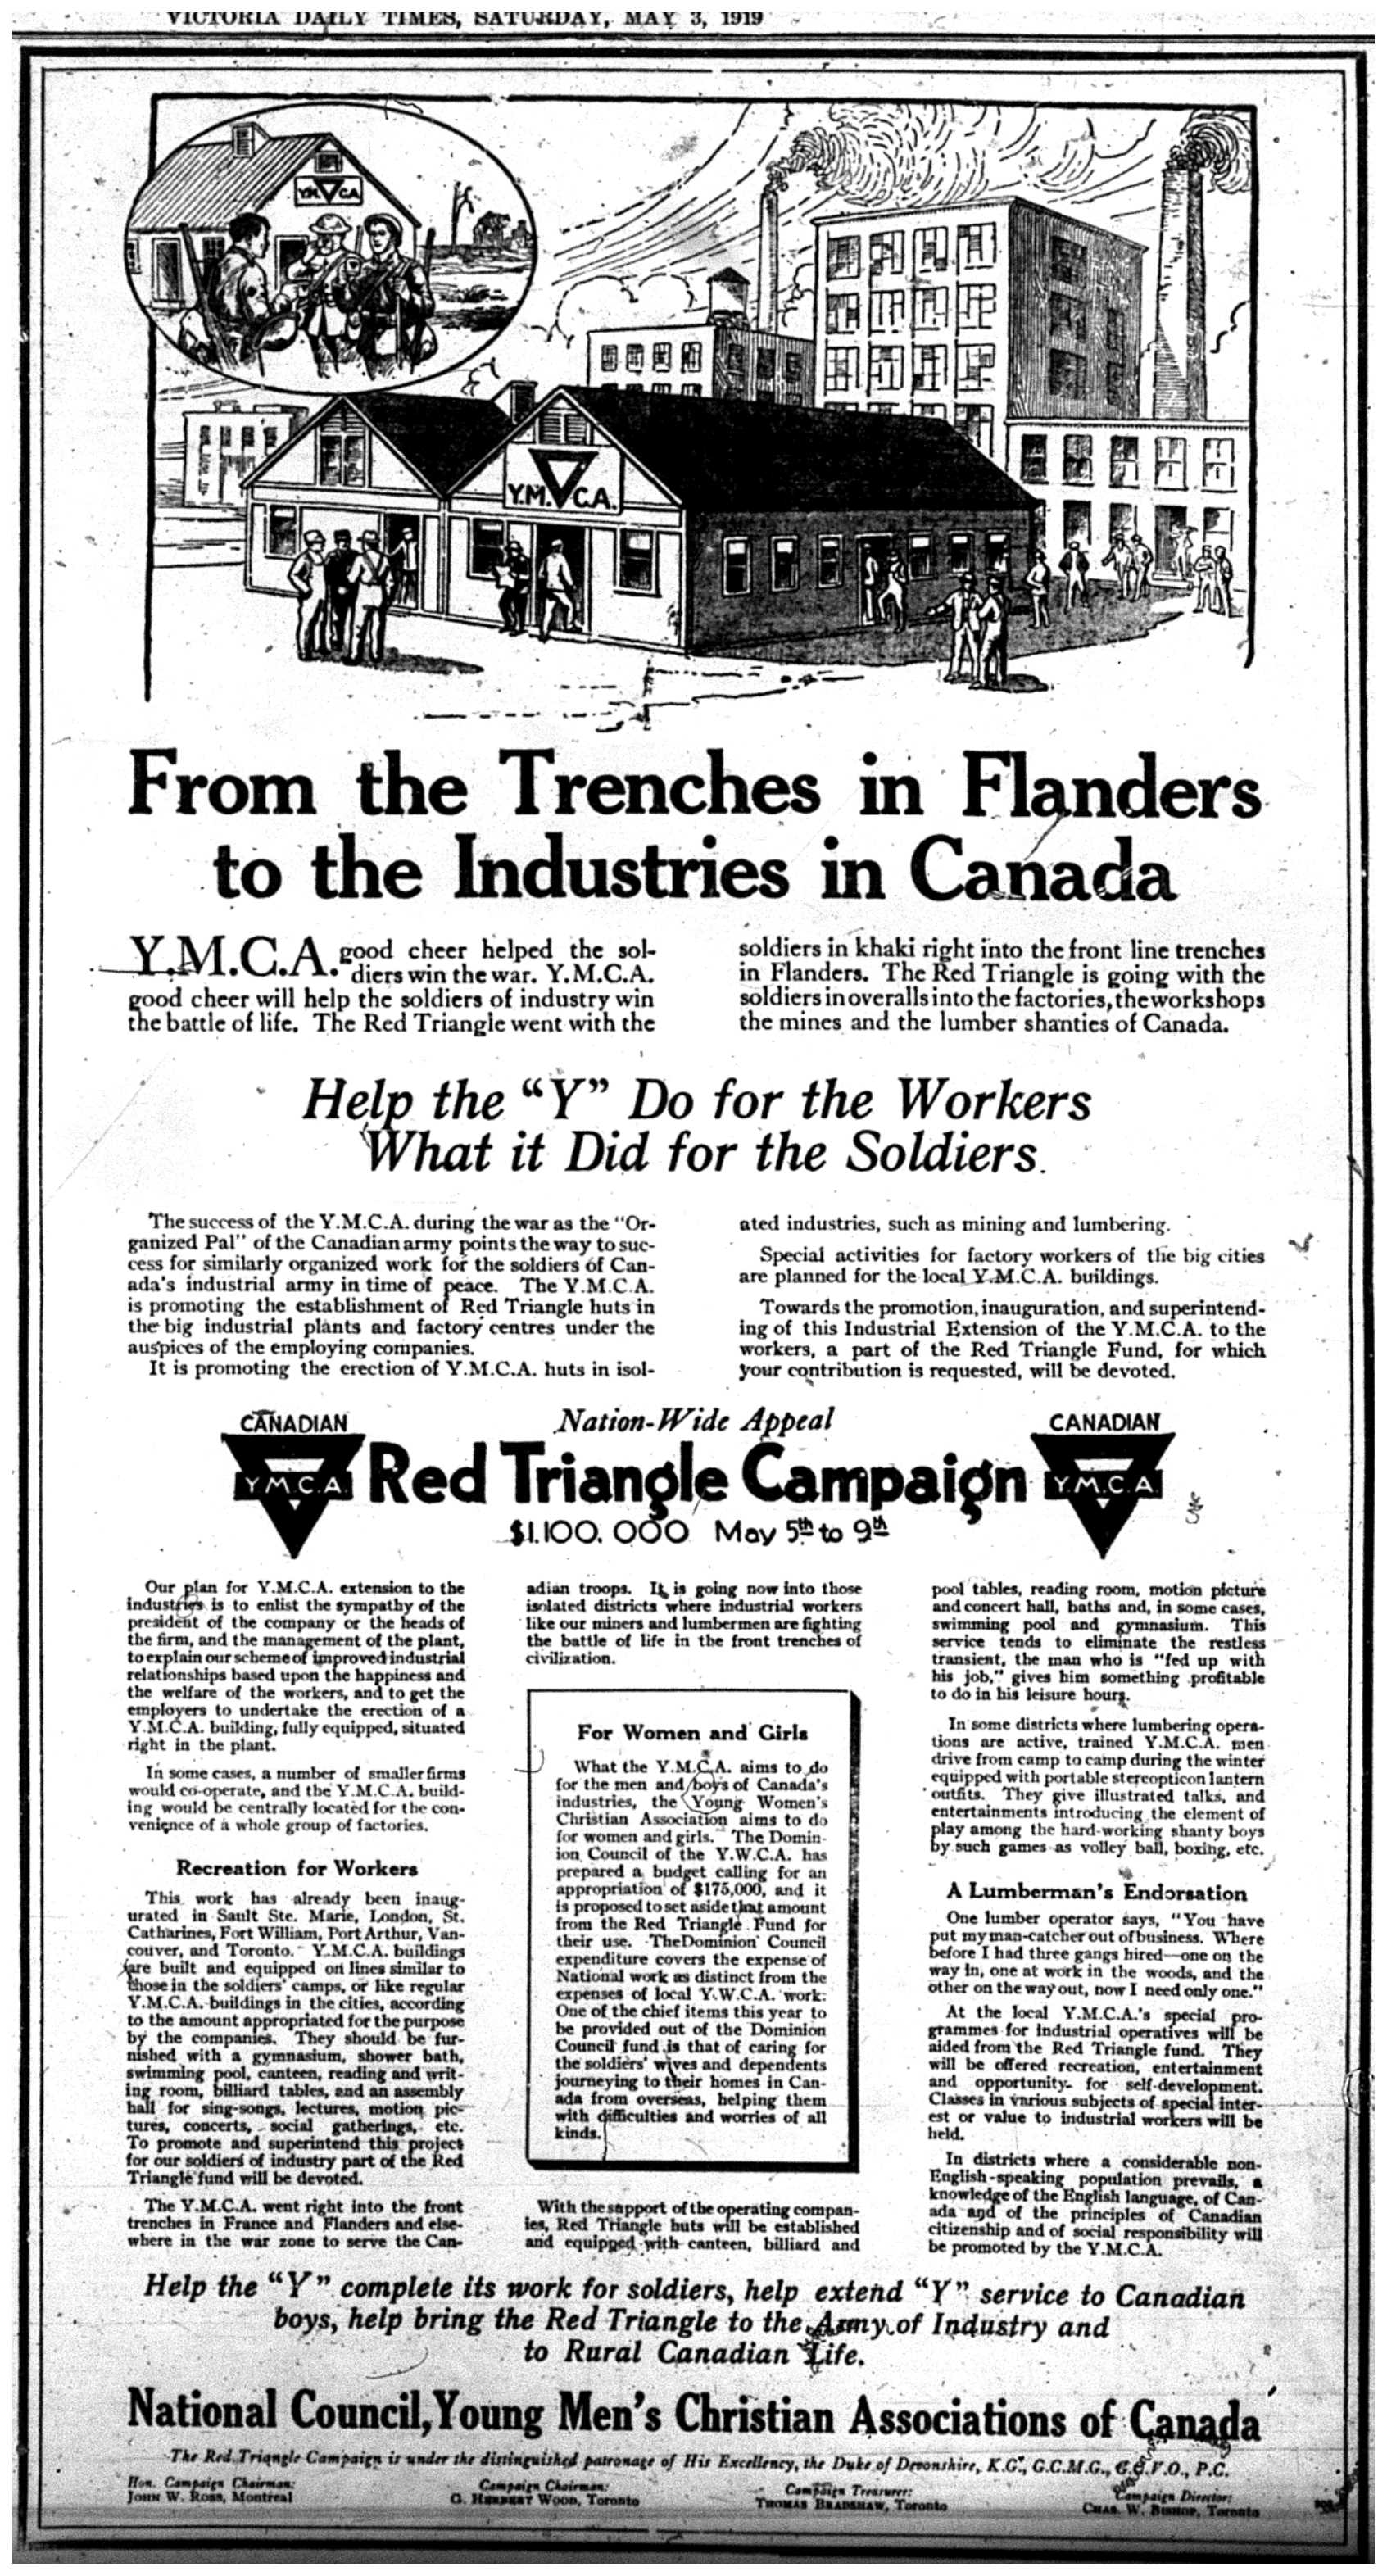 """From the Trenches in Flanders to the Industries in Canada"""